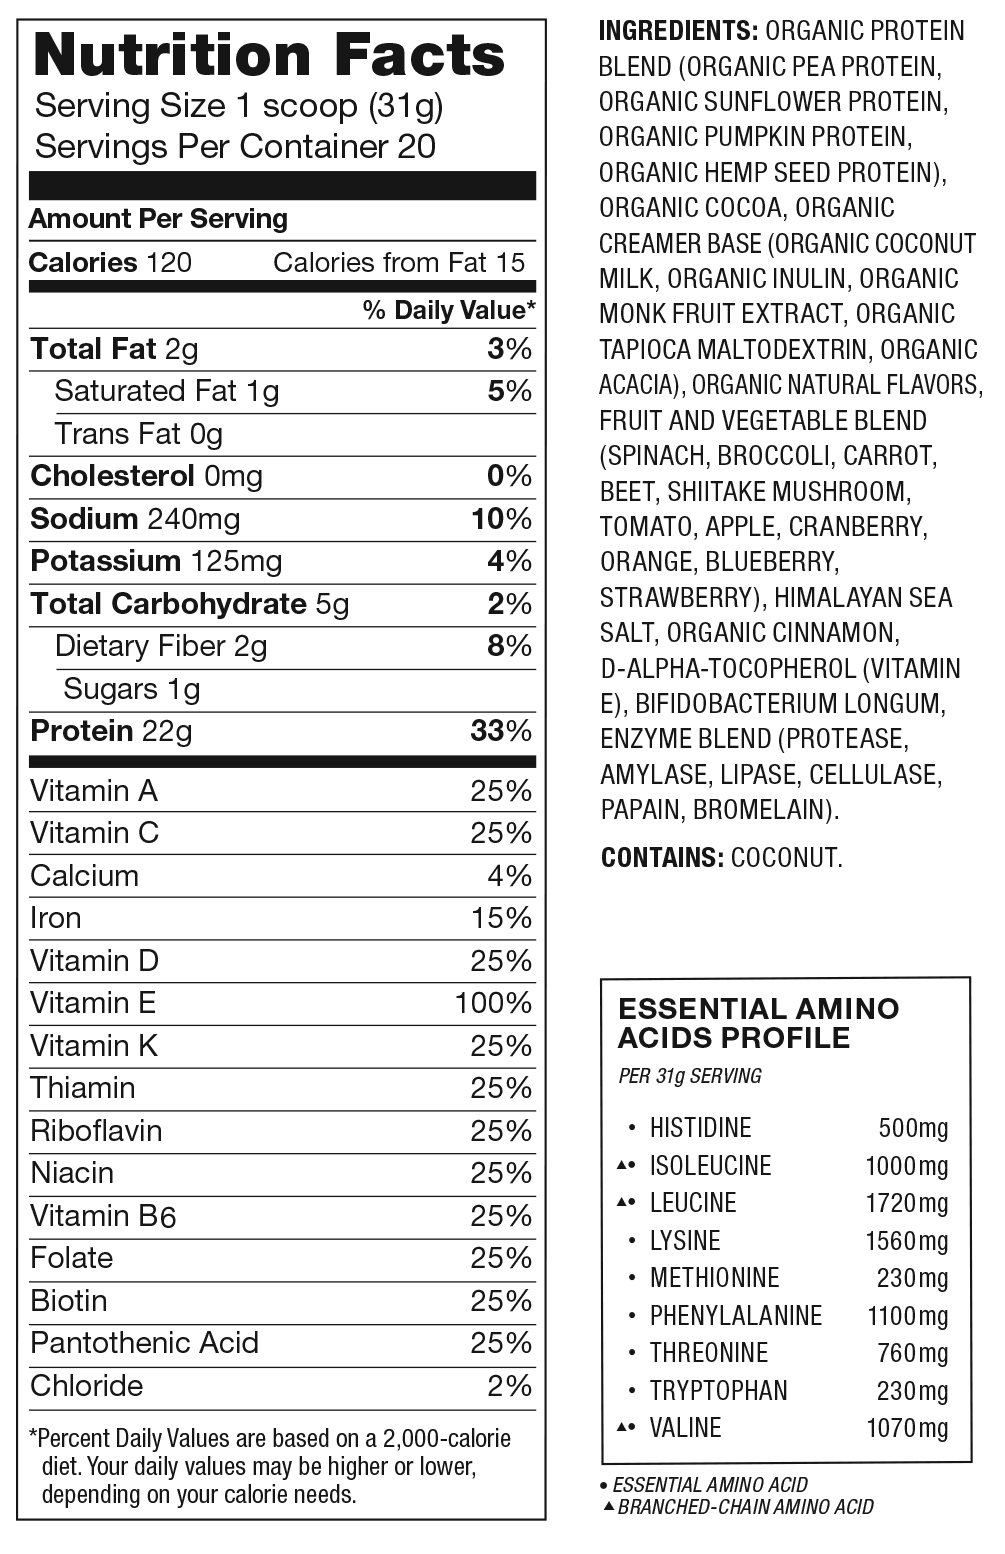 Organic Plant Protein Superfood Smoothie Nutrition Facts